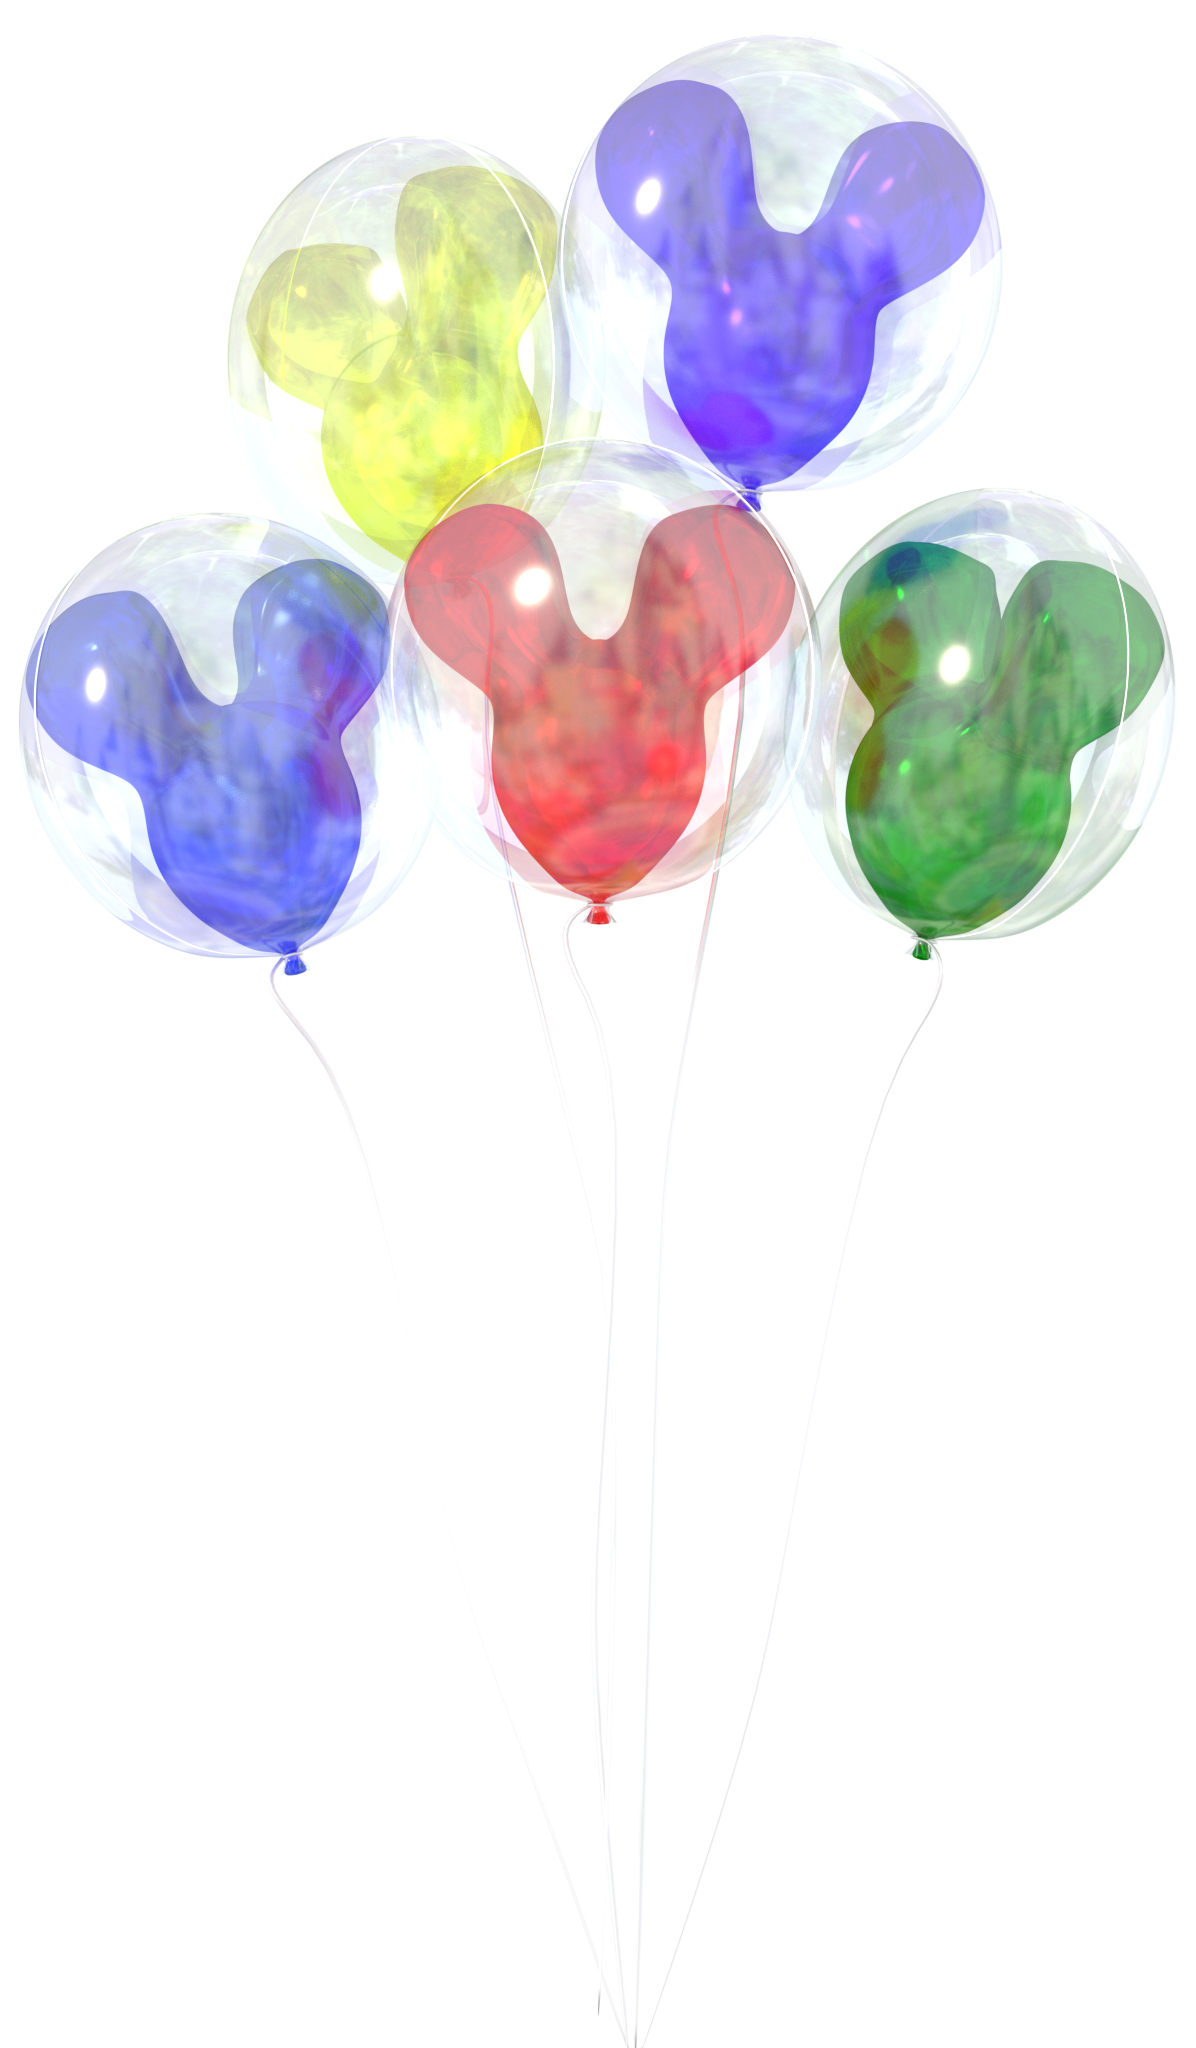 Walt Disney World Balloons Png & Free Walt Disney World Balloons.png.